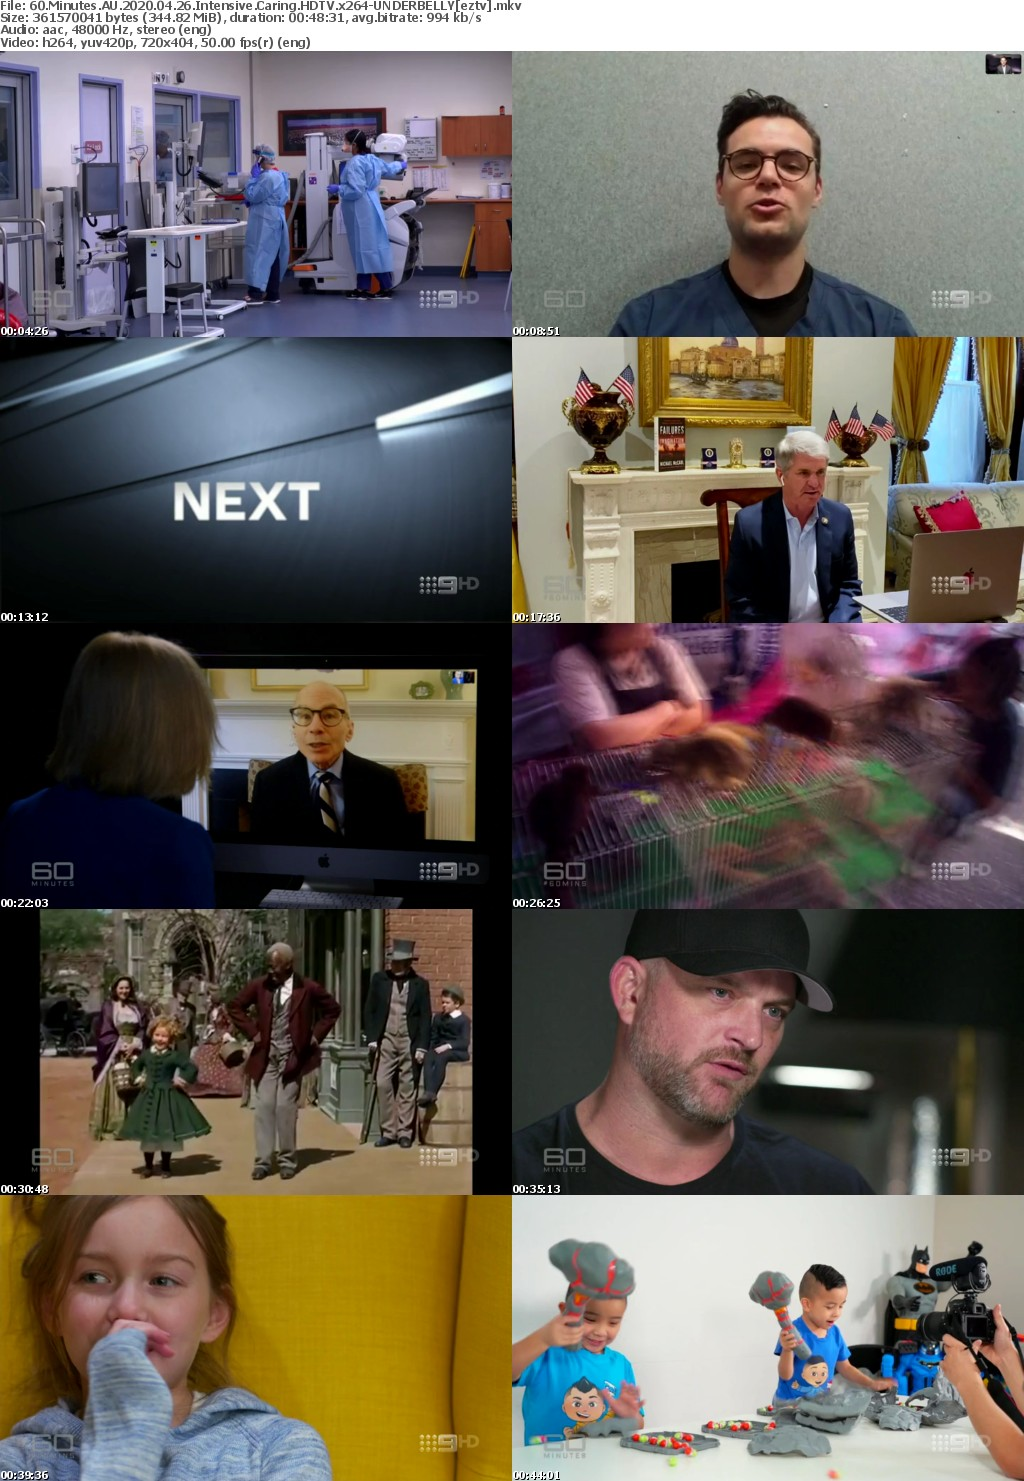 60 Minutes AU 2020 04 26 Intensive Caring HDTV x264-UNDERBELLY